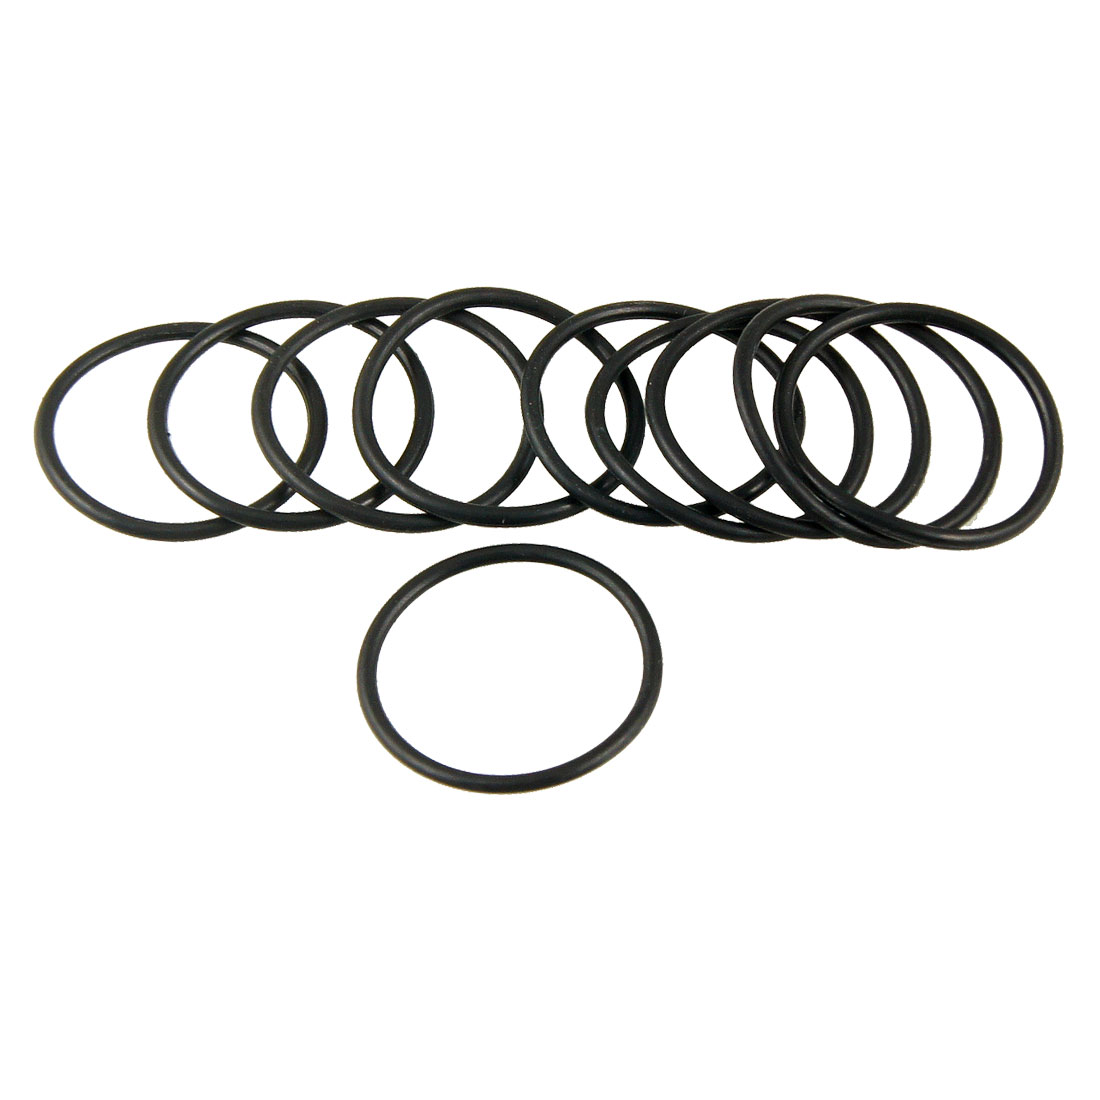 10-Pcs-Black-28mm-OD-2mm-Thickness-Nitrile-Rubber-O-ring-Oil-Seal-Gaskets